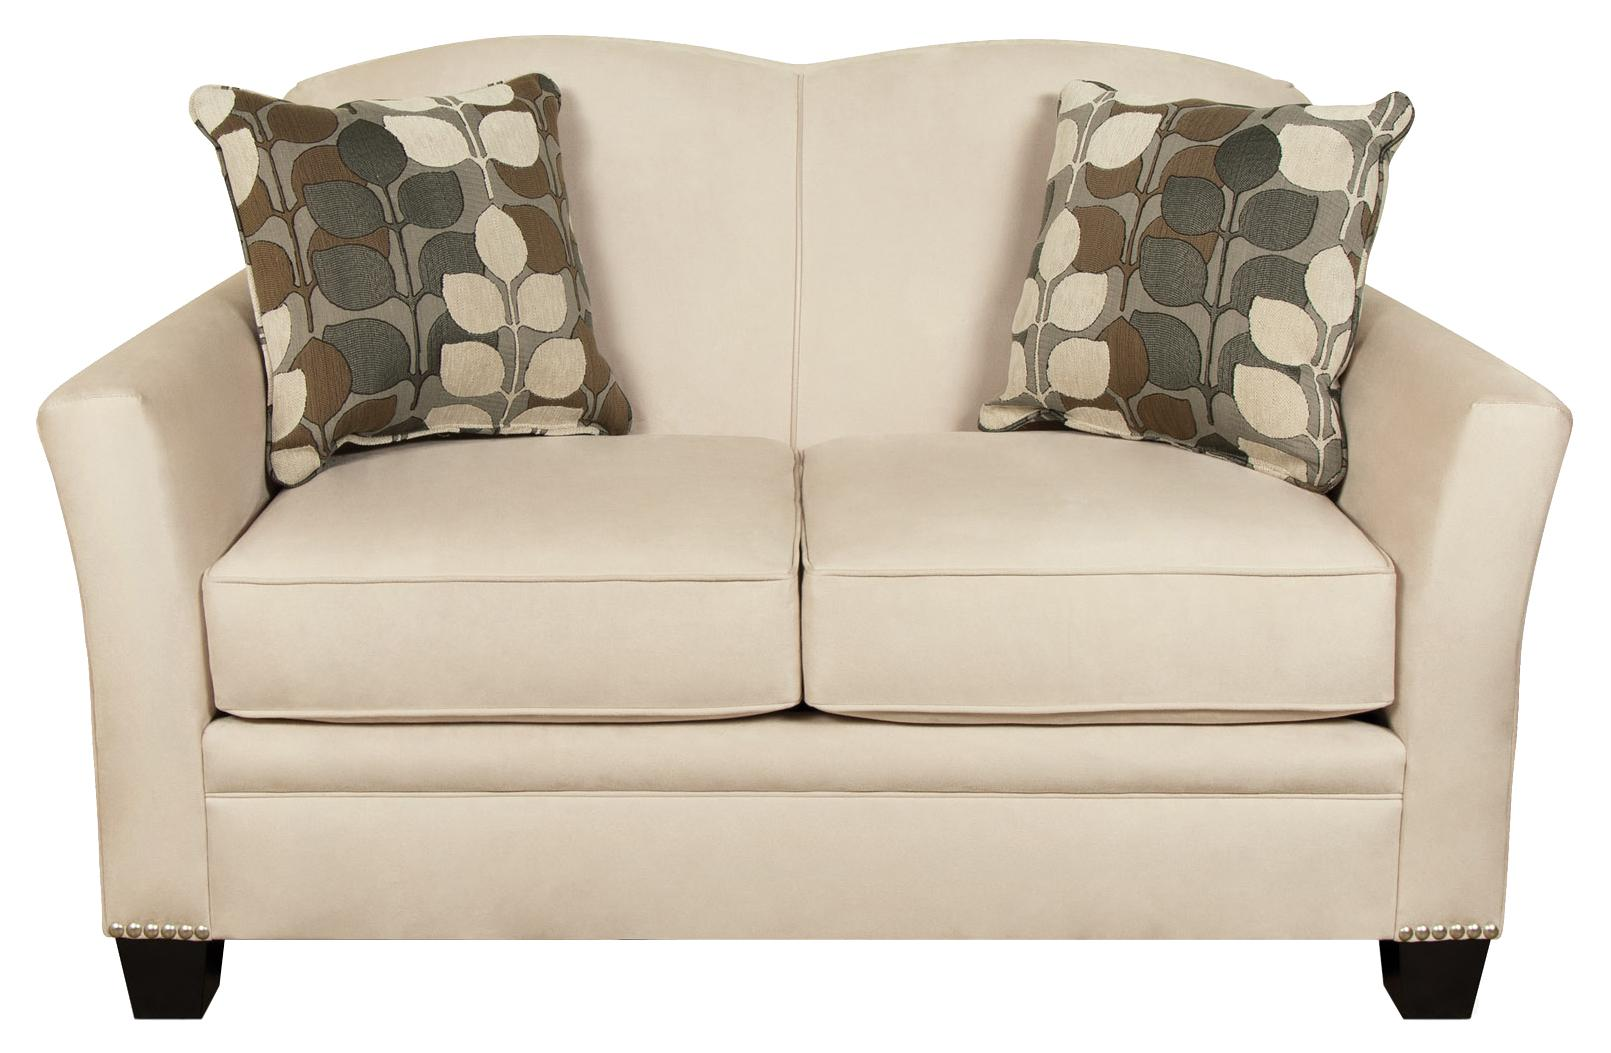 England Hilleary Loveseat with Nailheads - Item Number: 5036N